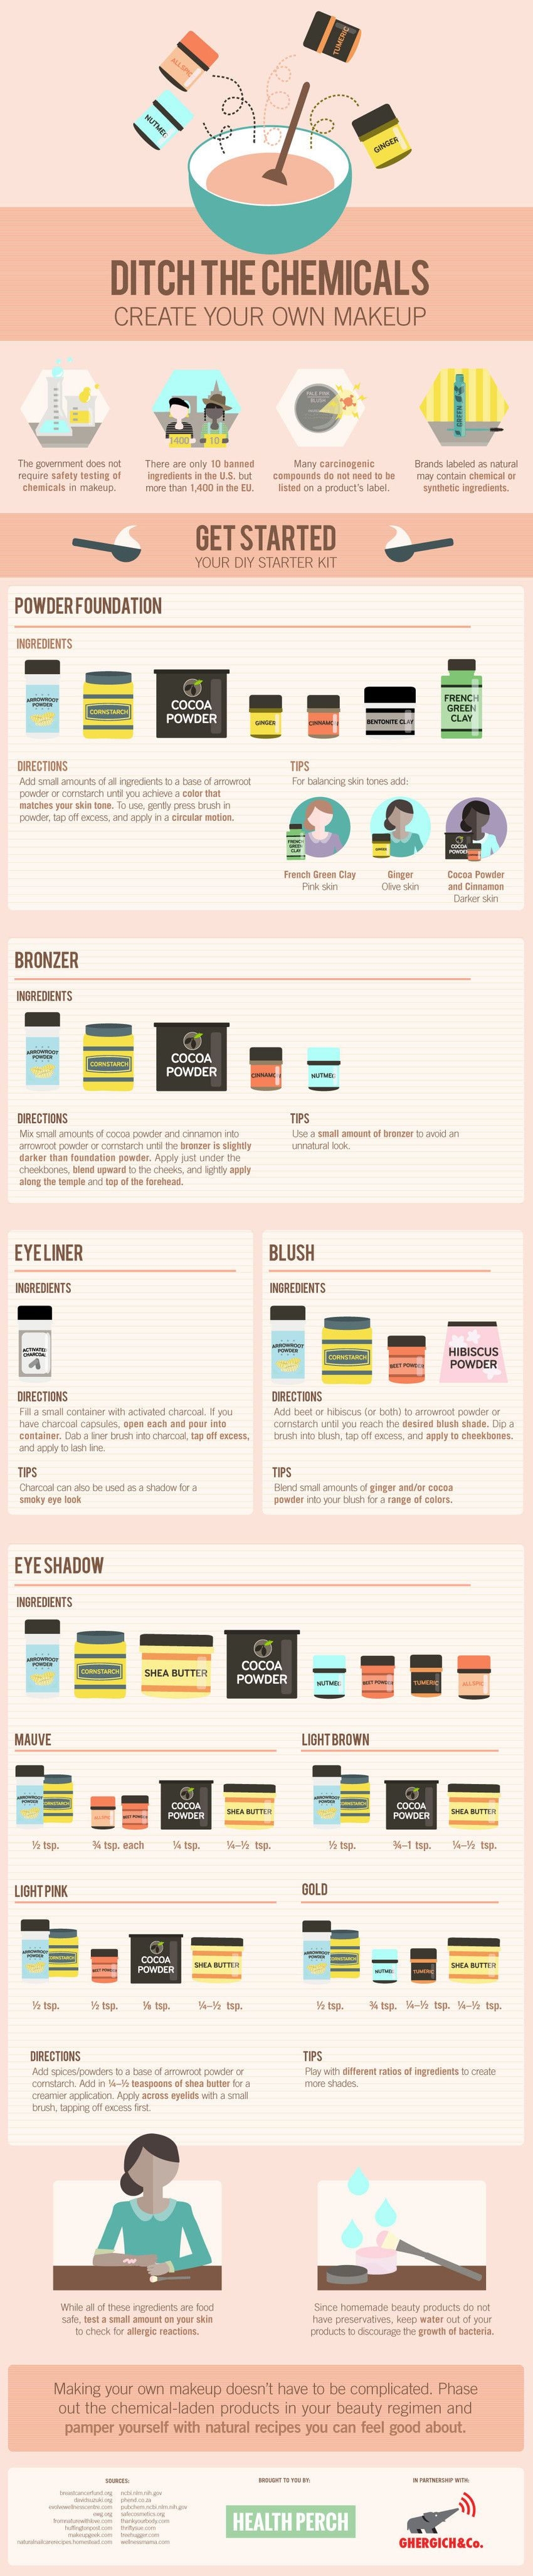 Use Your Pantry To Create Your Own Makeup (Infographic)   More ...